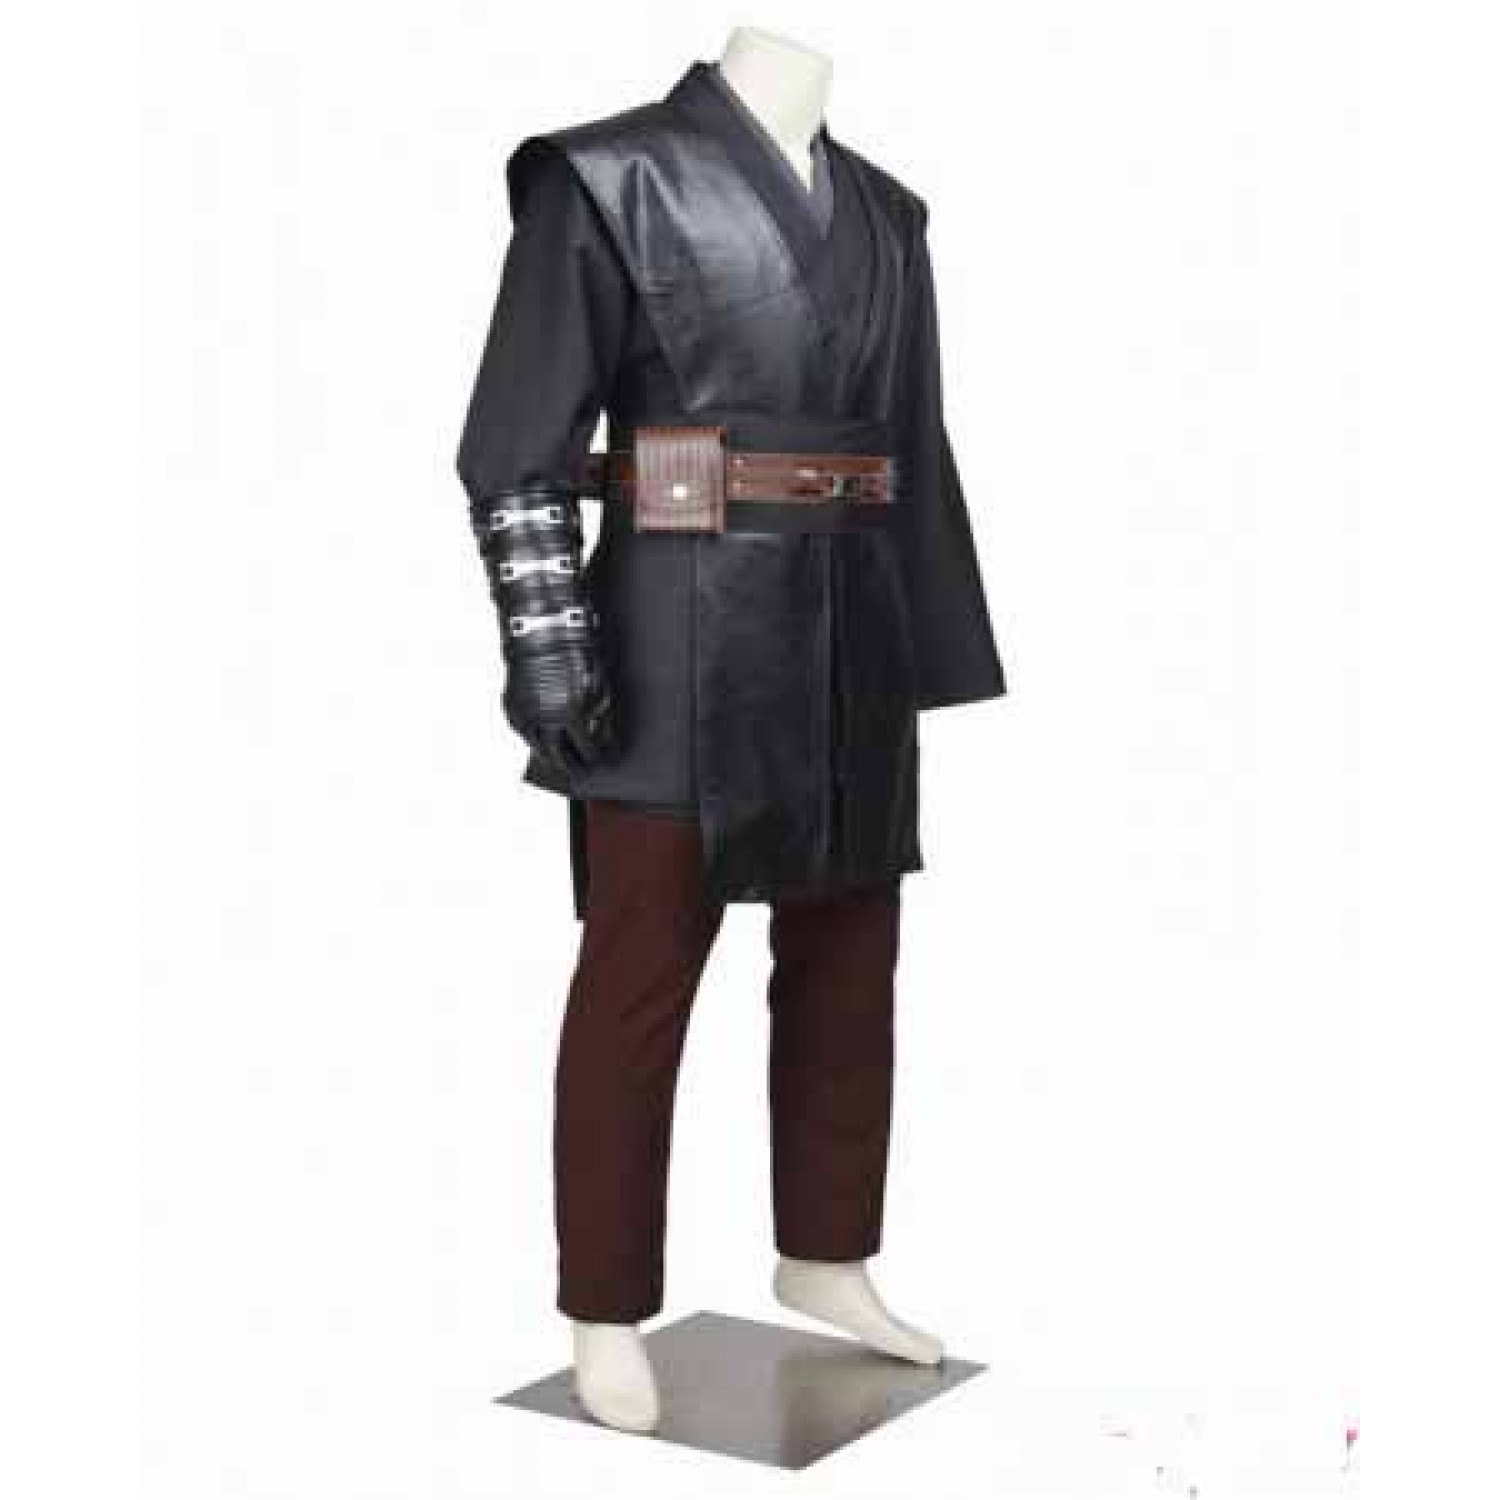 Anakin Skywalker Cosplay Costume for Star Wars III Revenge of the Sith